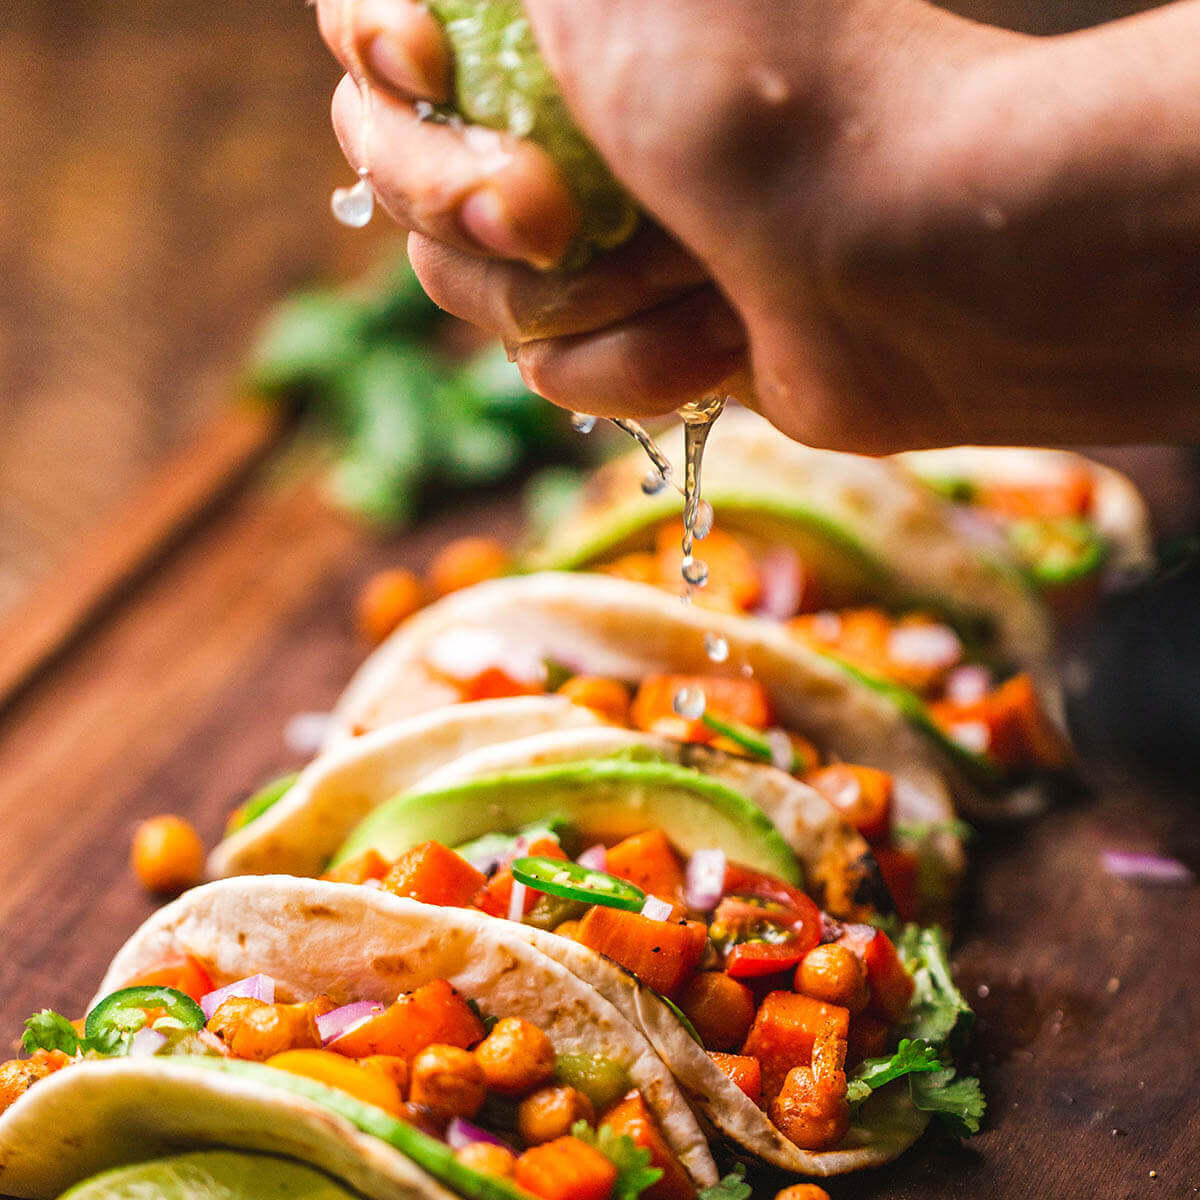 Tacos lined up and topping with all the fixings, there's a hand squeezing fresh lime over all the tacos.